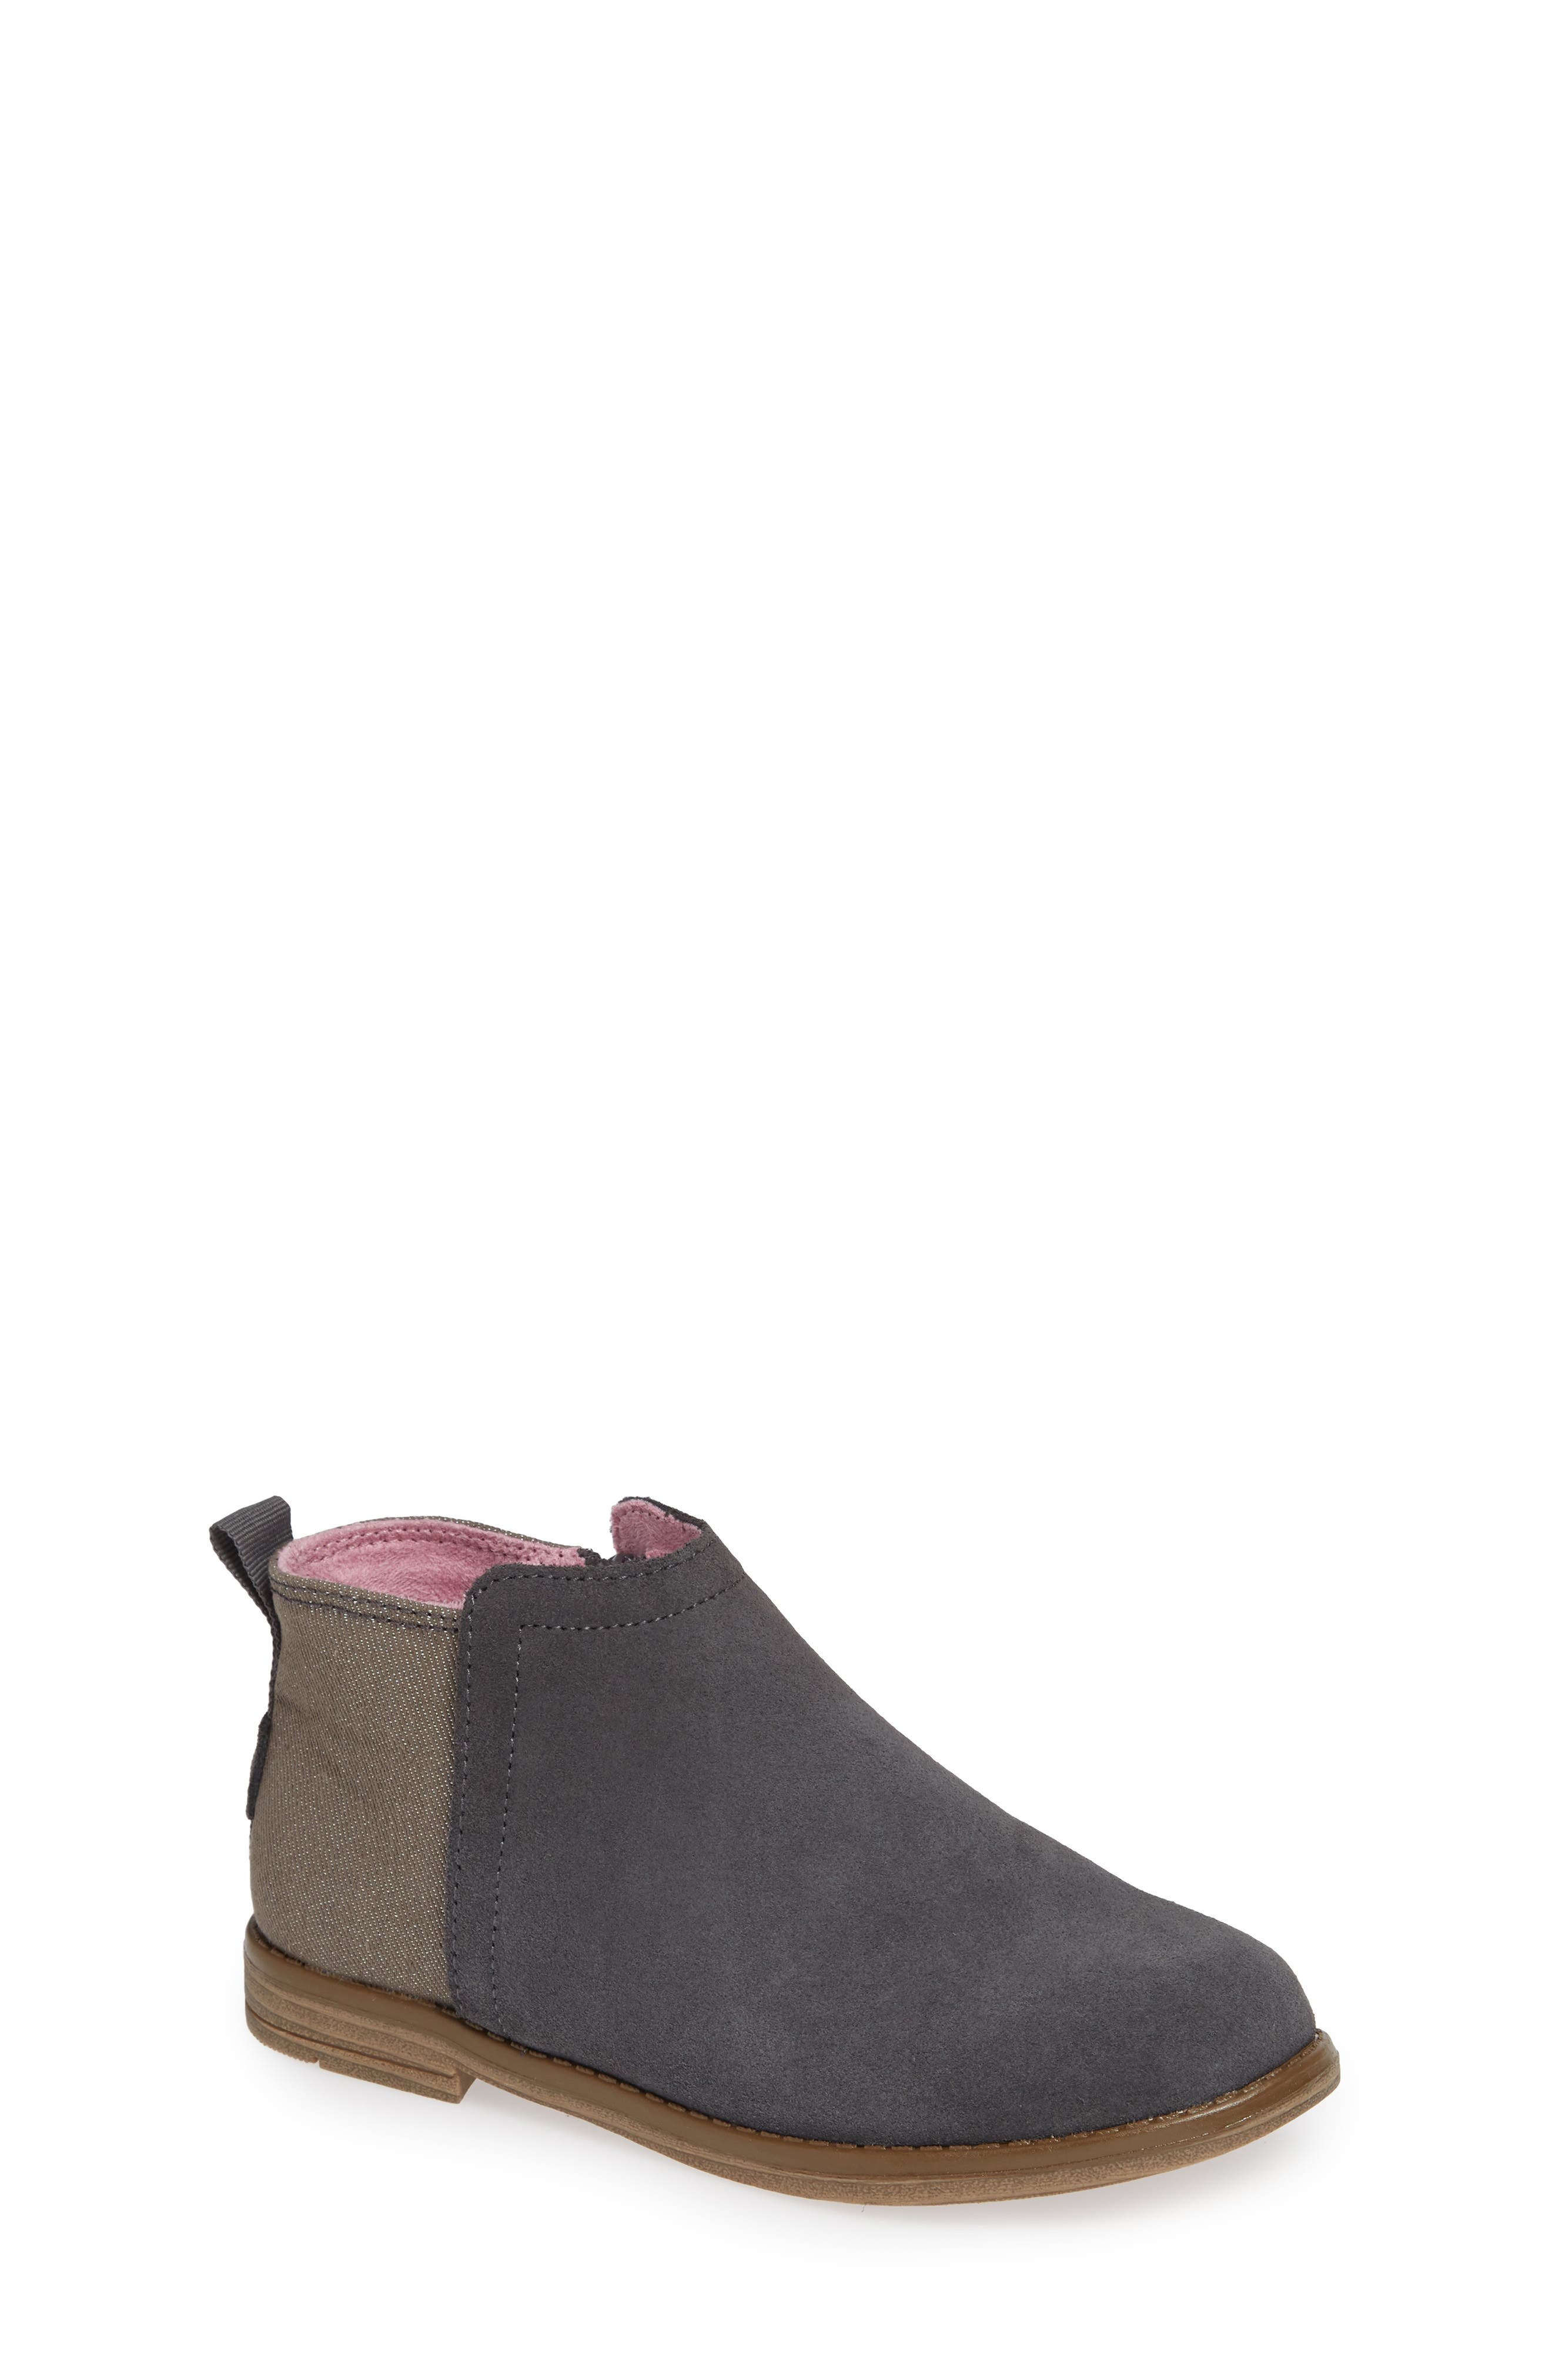 Deia Mixed Media Bootie,                             Main thumbnail 1, color,                             Grey Suede Glimmer